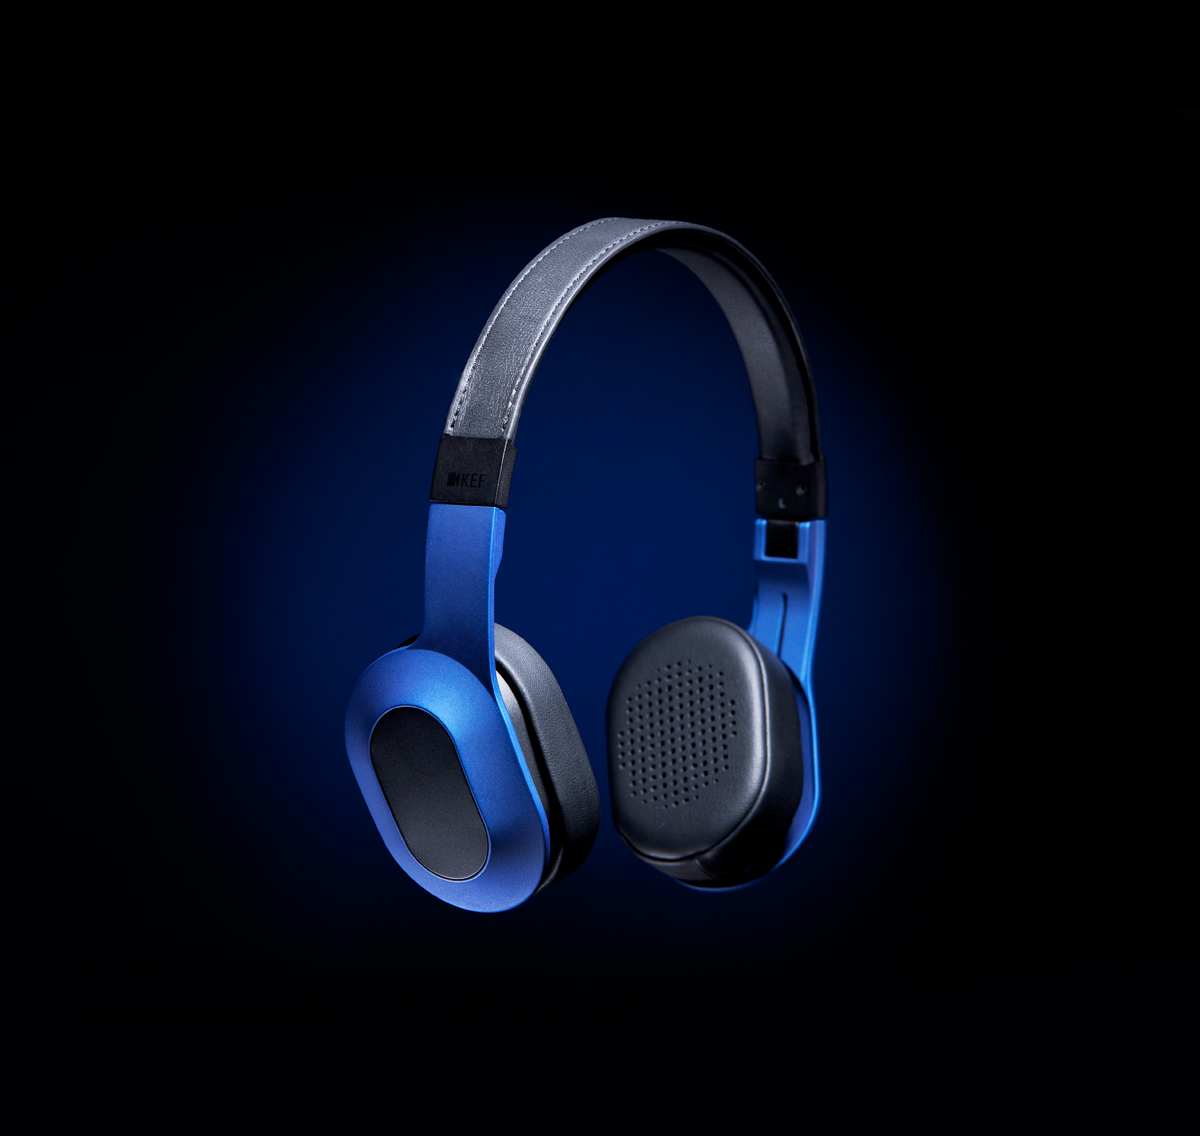 kef m400. i enjoyed making these essentially very basic shots of the kef m400 headphones, and look forward to more. kef a